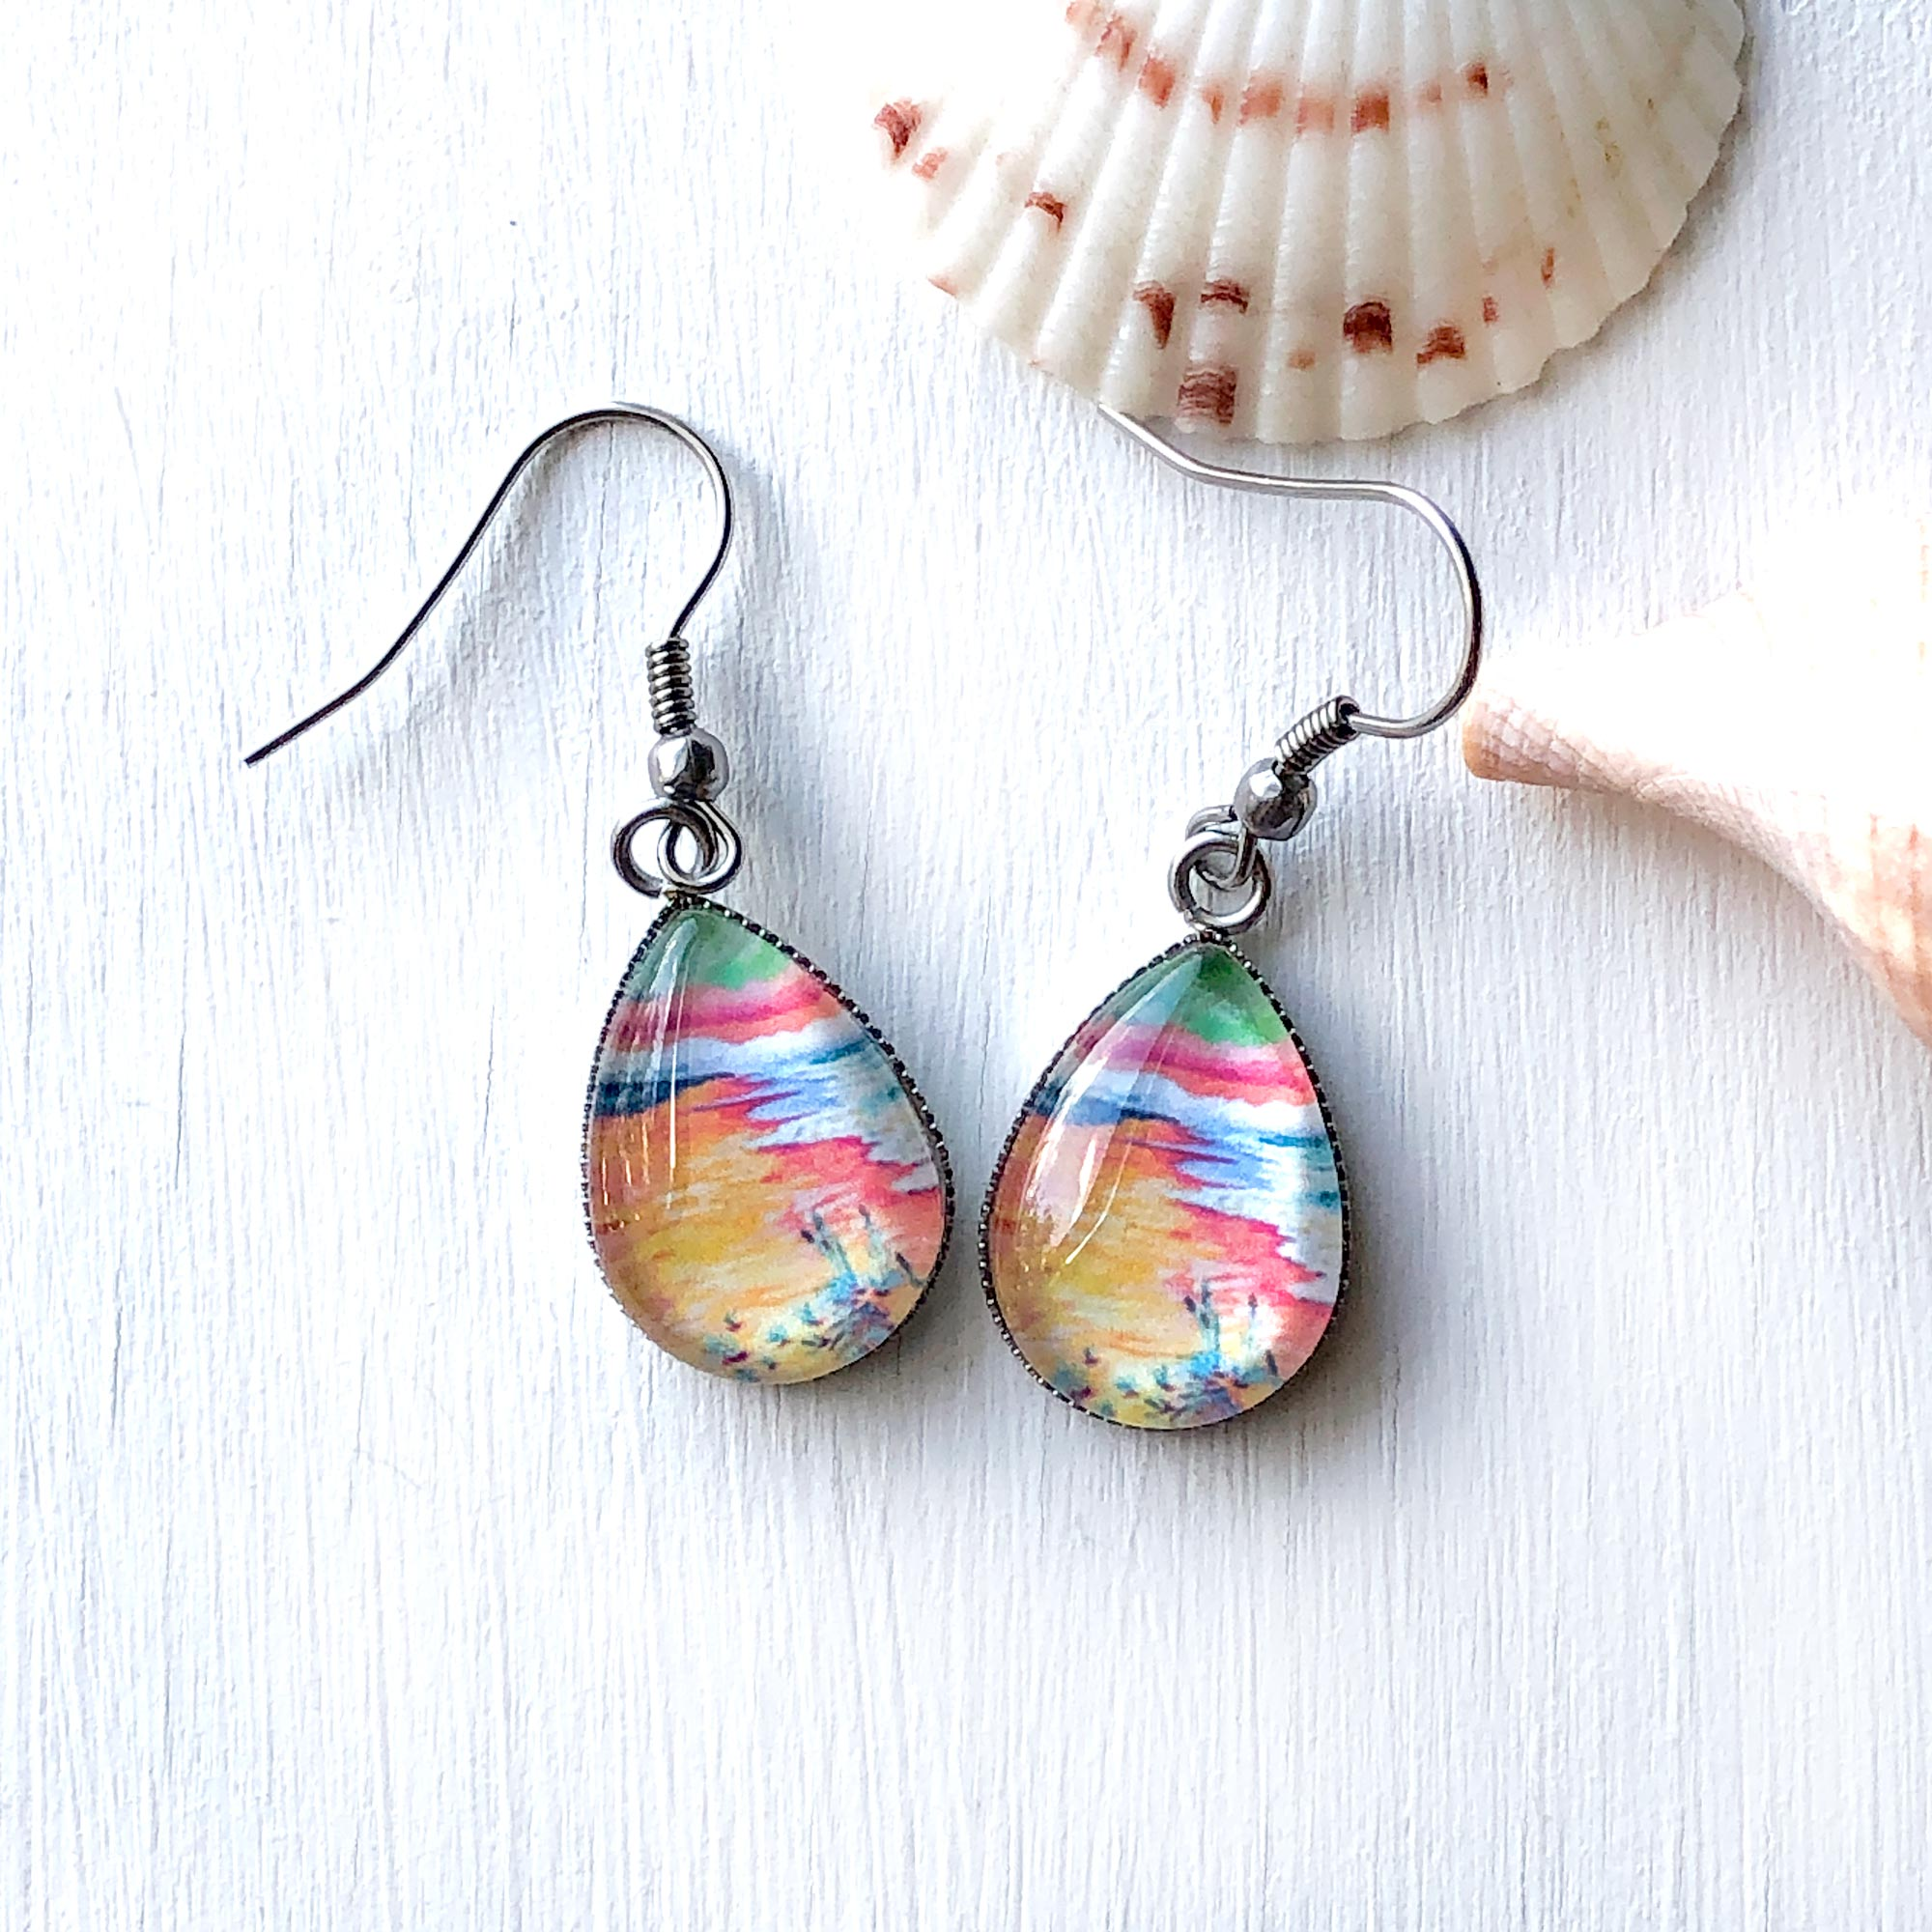 Peaceful Seascape II - Stainless Steel Earrings